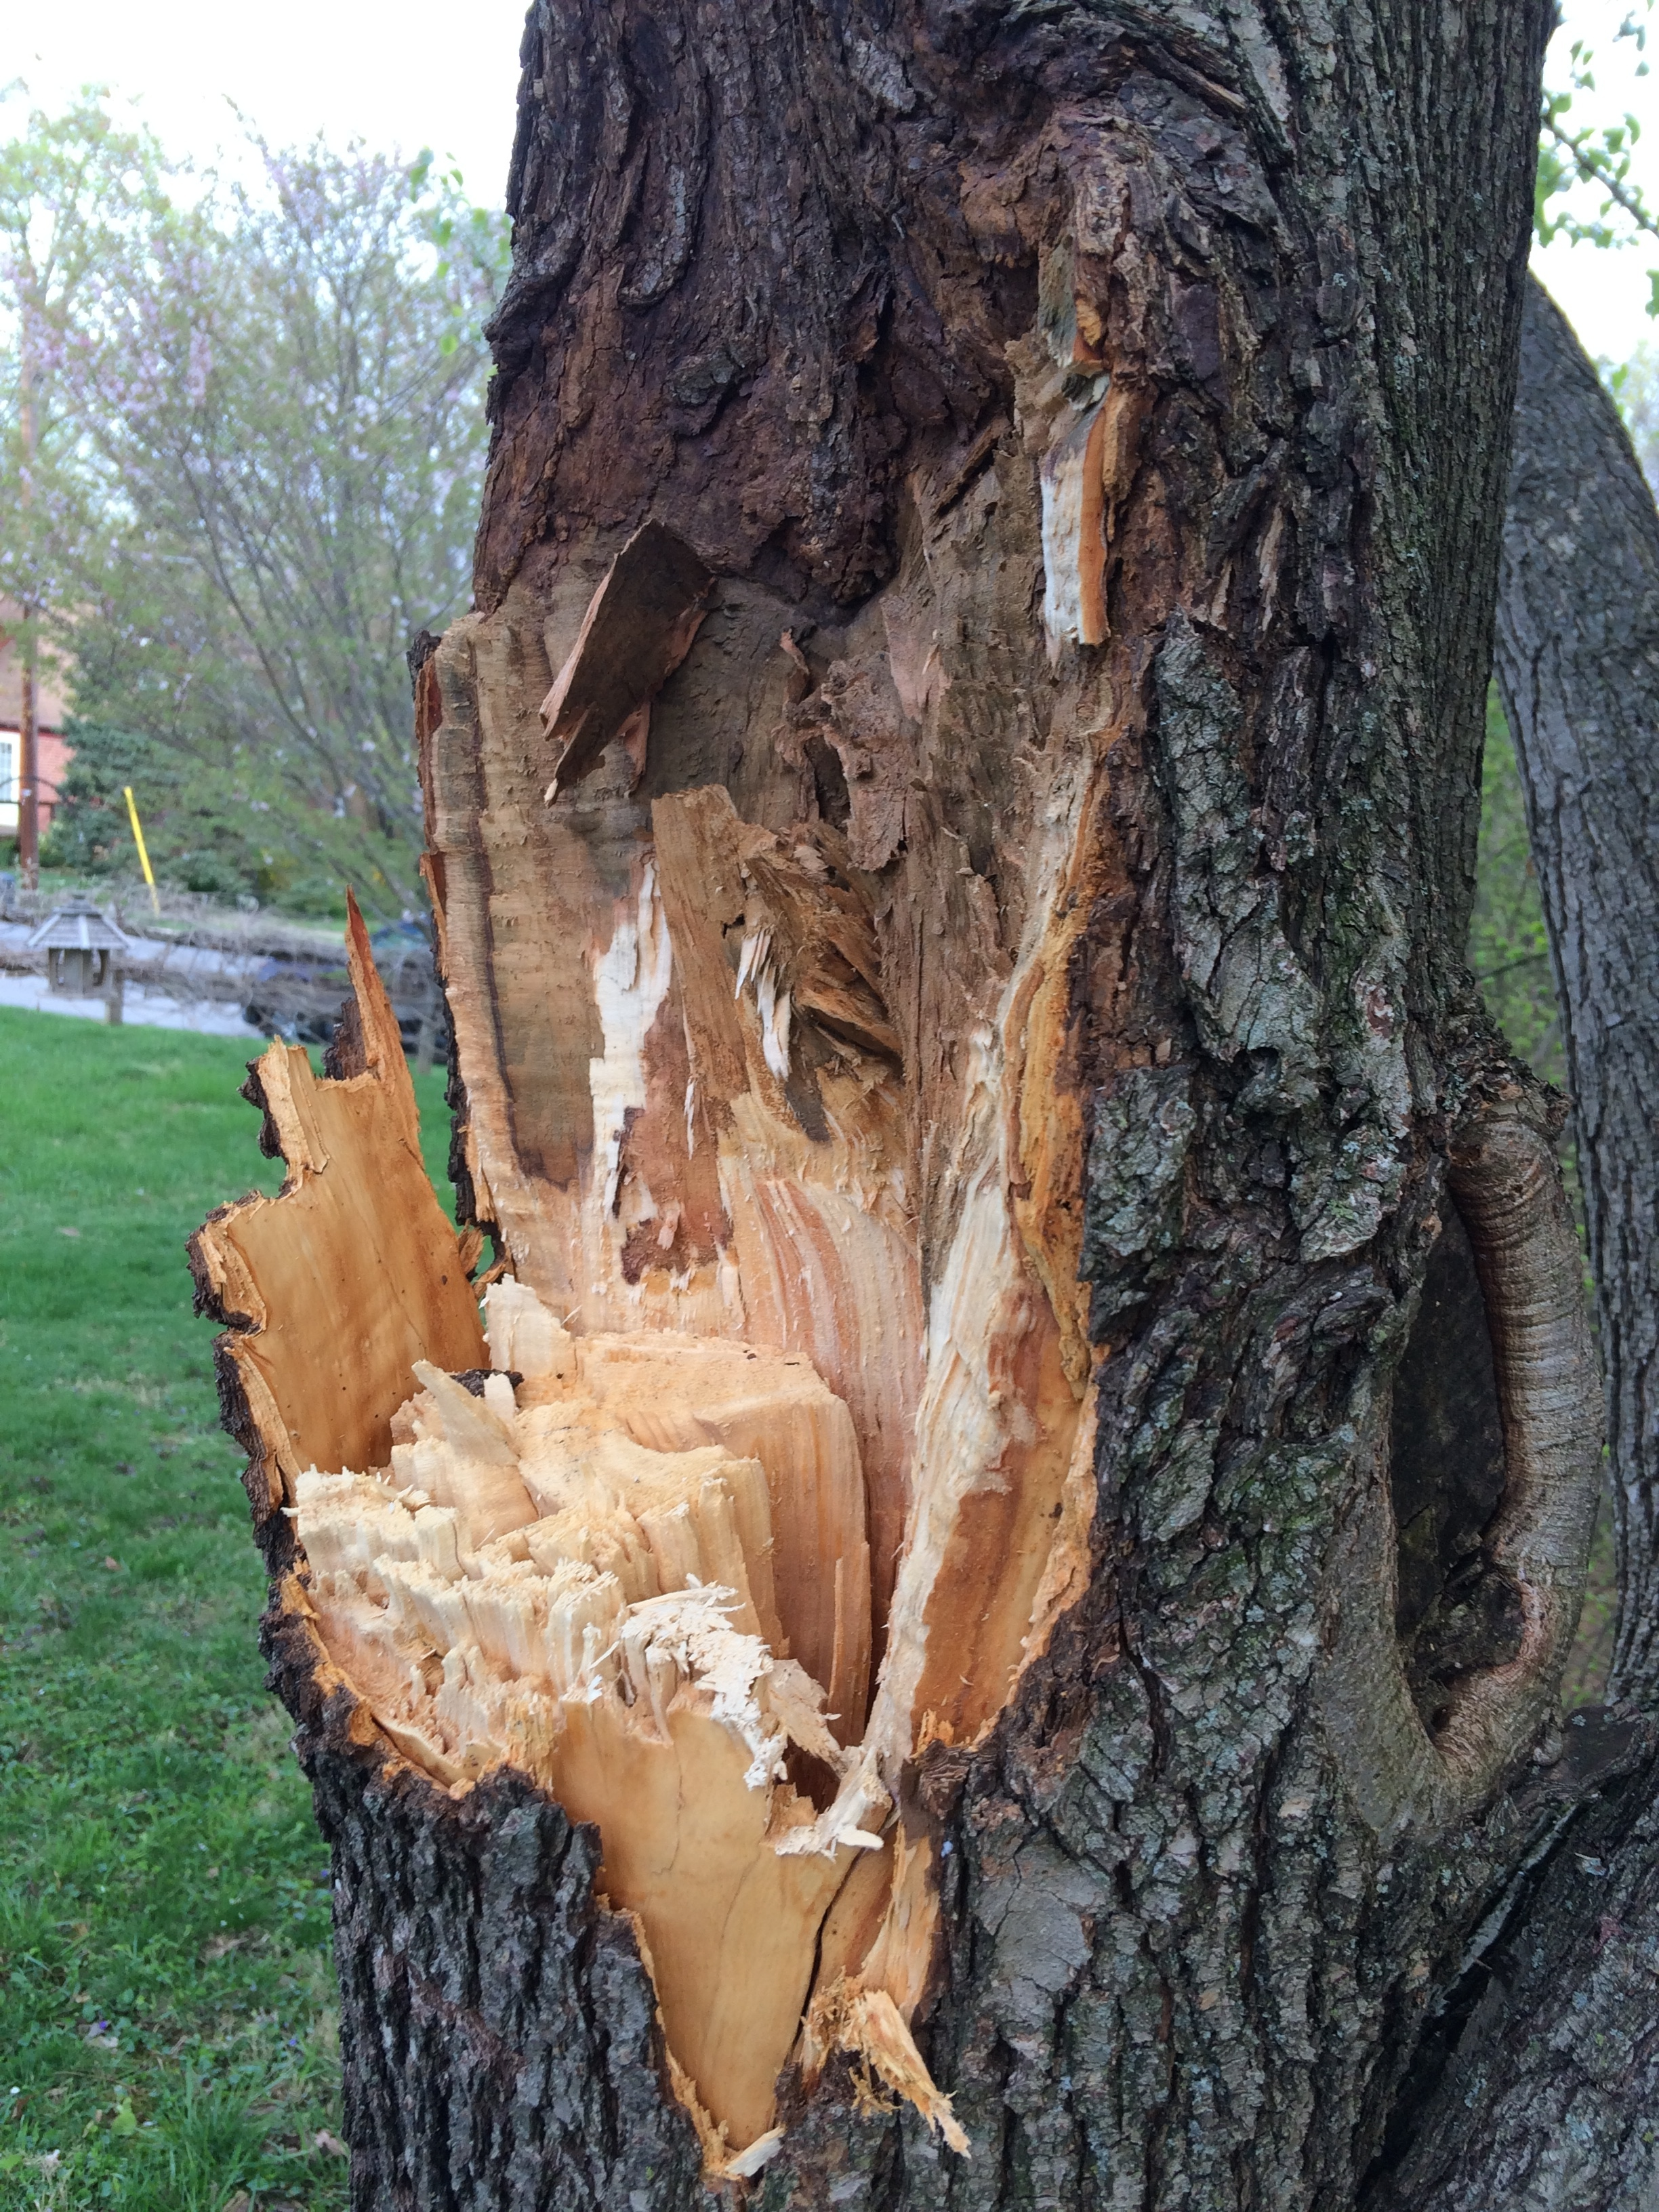 Tree damage caused by wind - Ask an Expert